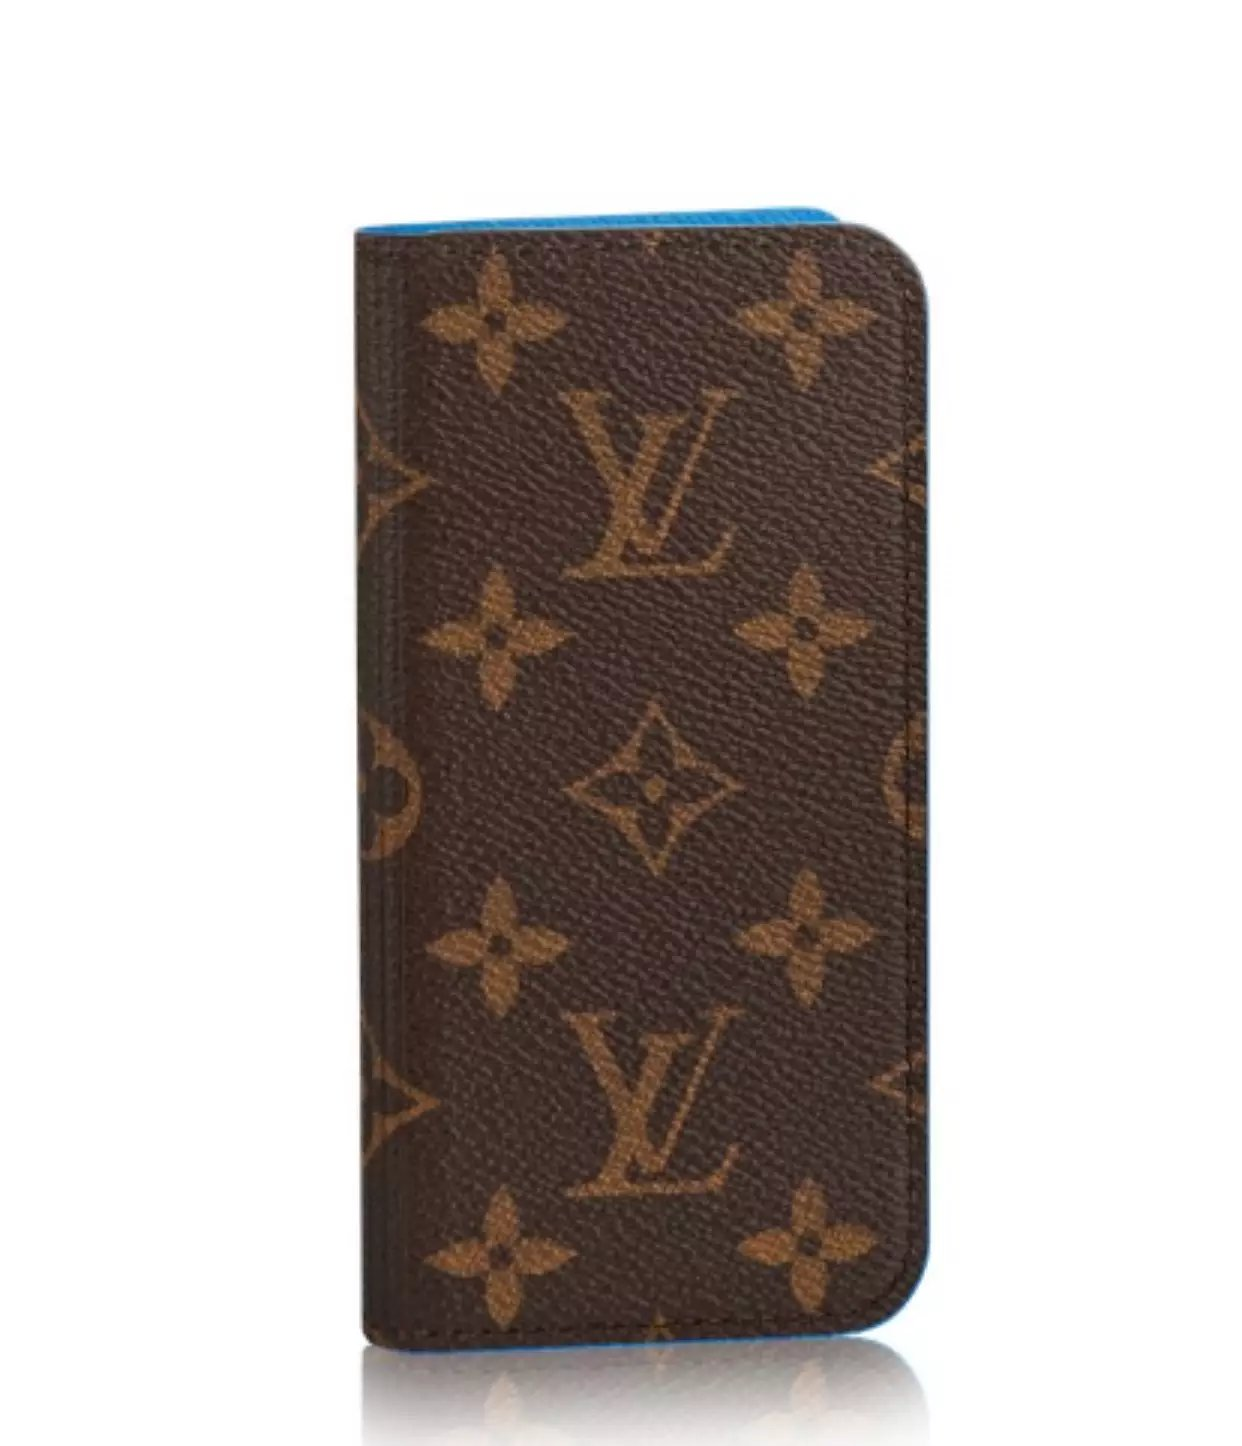 iphone schutzhülle iphone hüllen günstig Louis Vuitton iphone7 Plus hülle klapptasche iphone 7 Plus iphone 7 Plus lederhülle apple zubehör iphone 7 Plus drei zubehör iphone 7 Plus hüllen 7lbst gestalten iphone 7 Plus